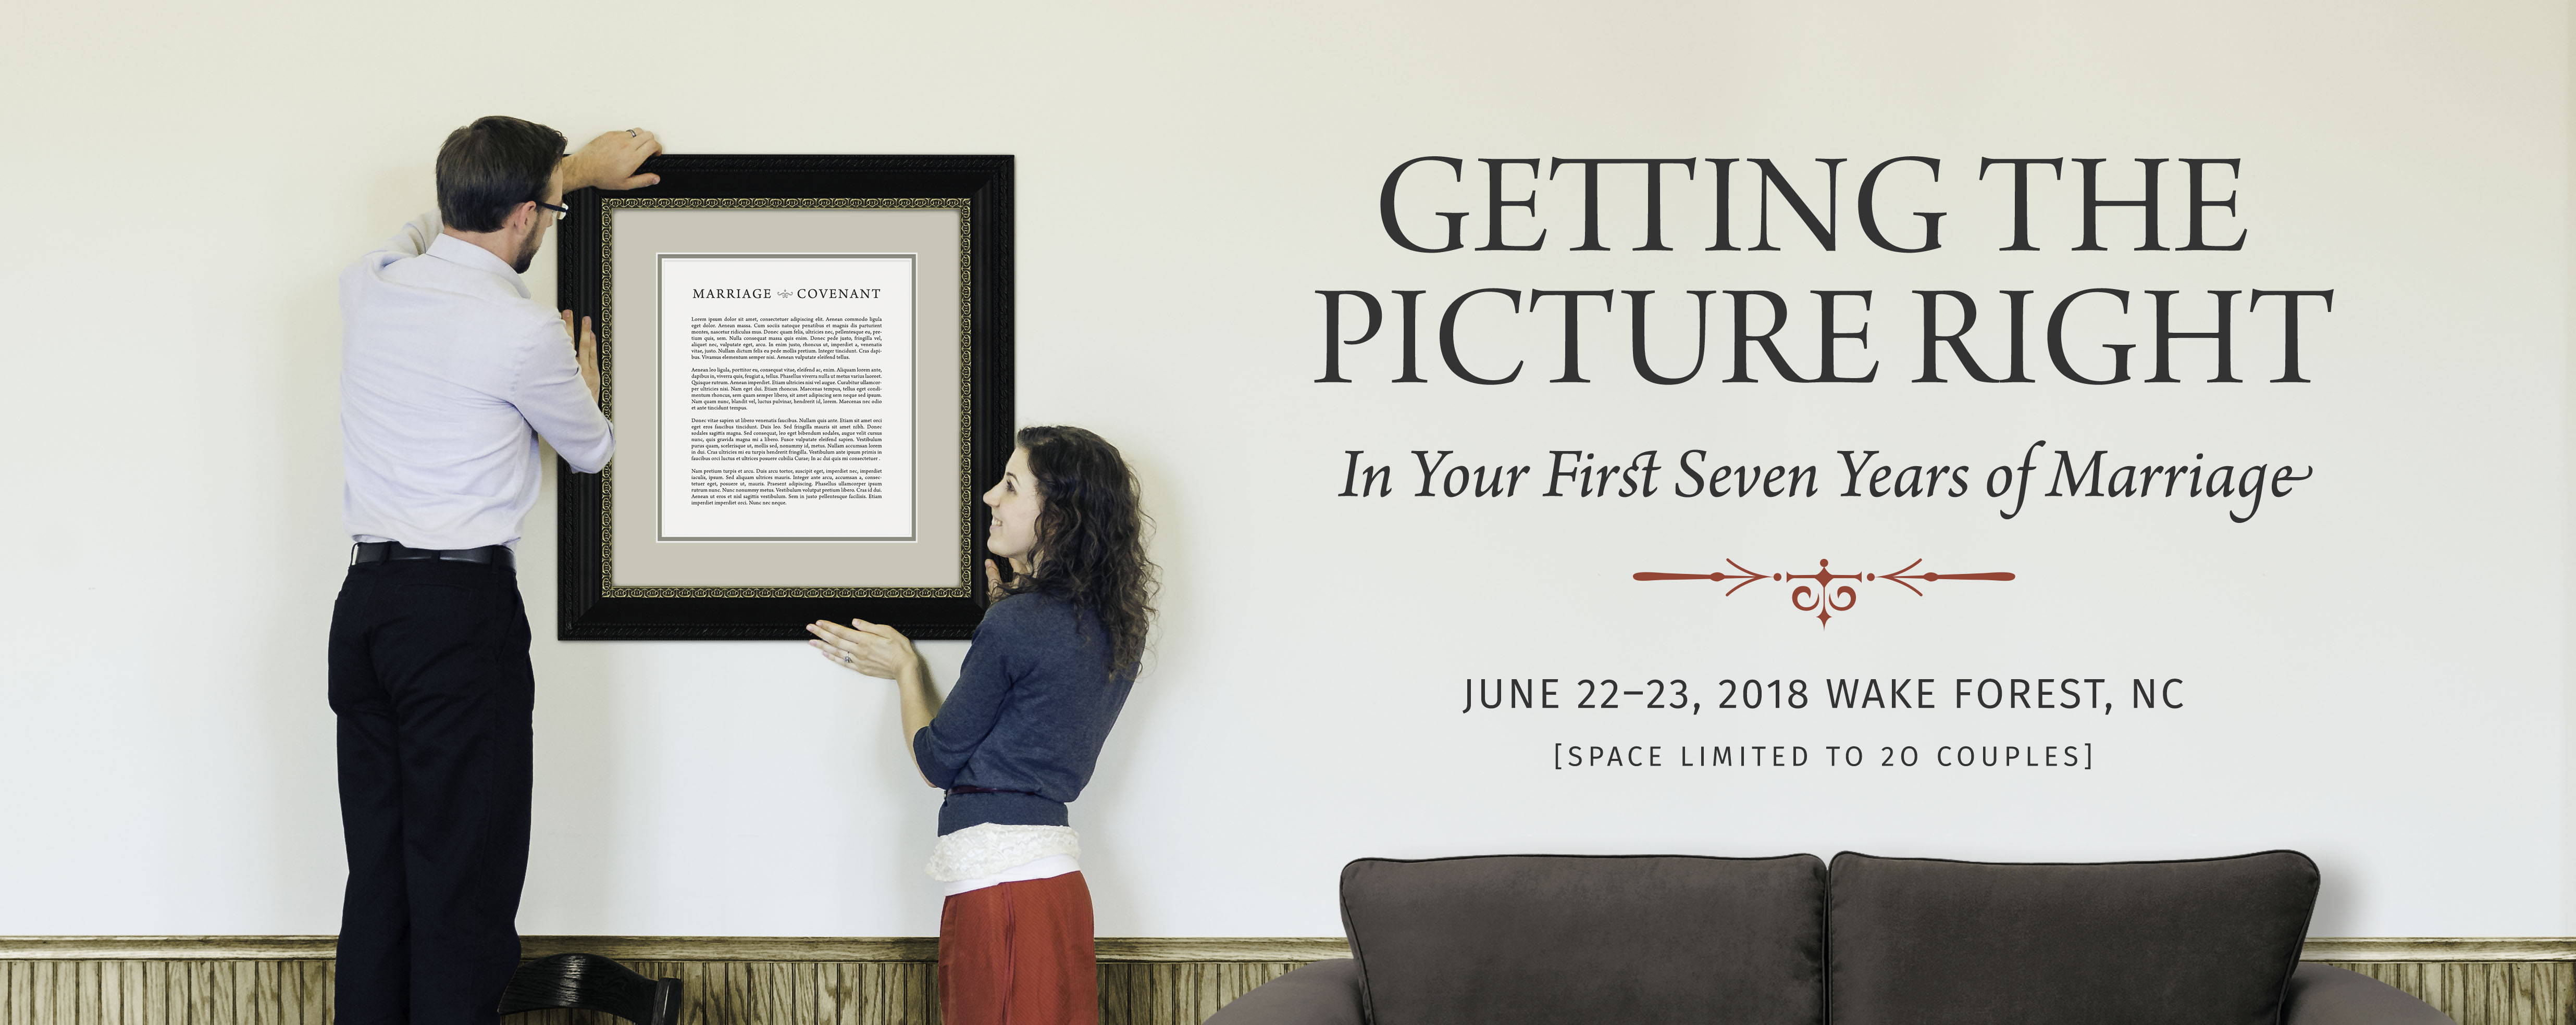 Getting the Picture Right - In Your First Seven Years of Marriage